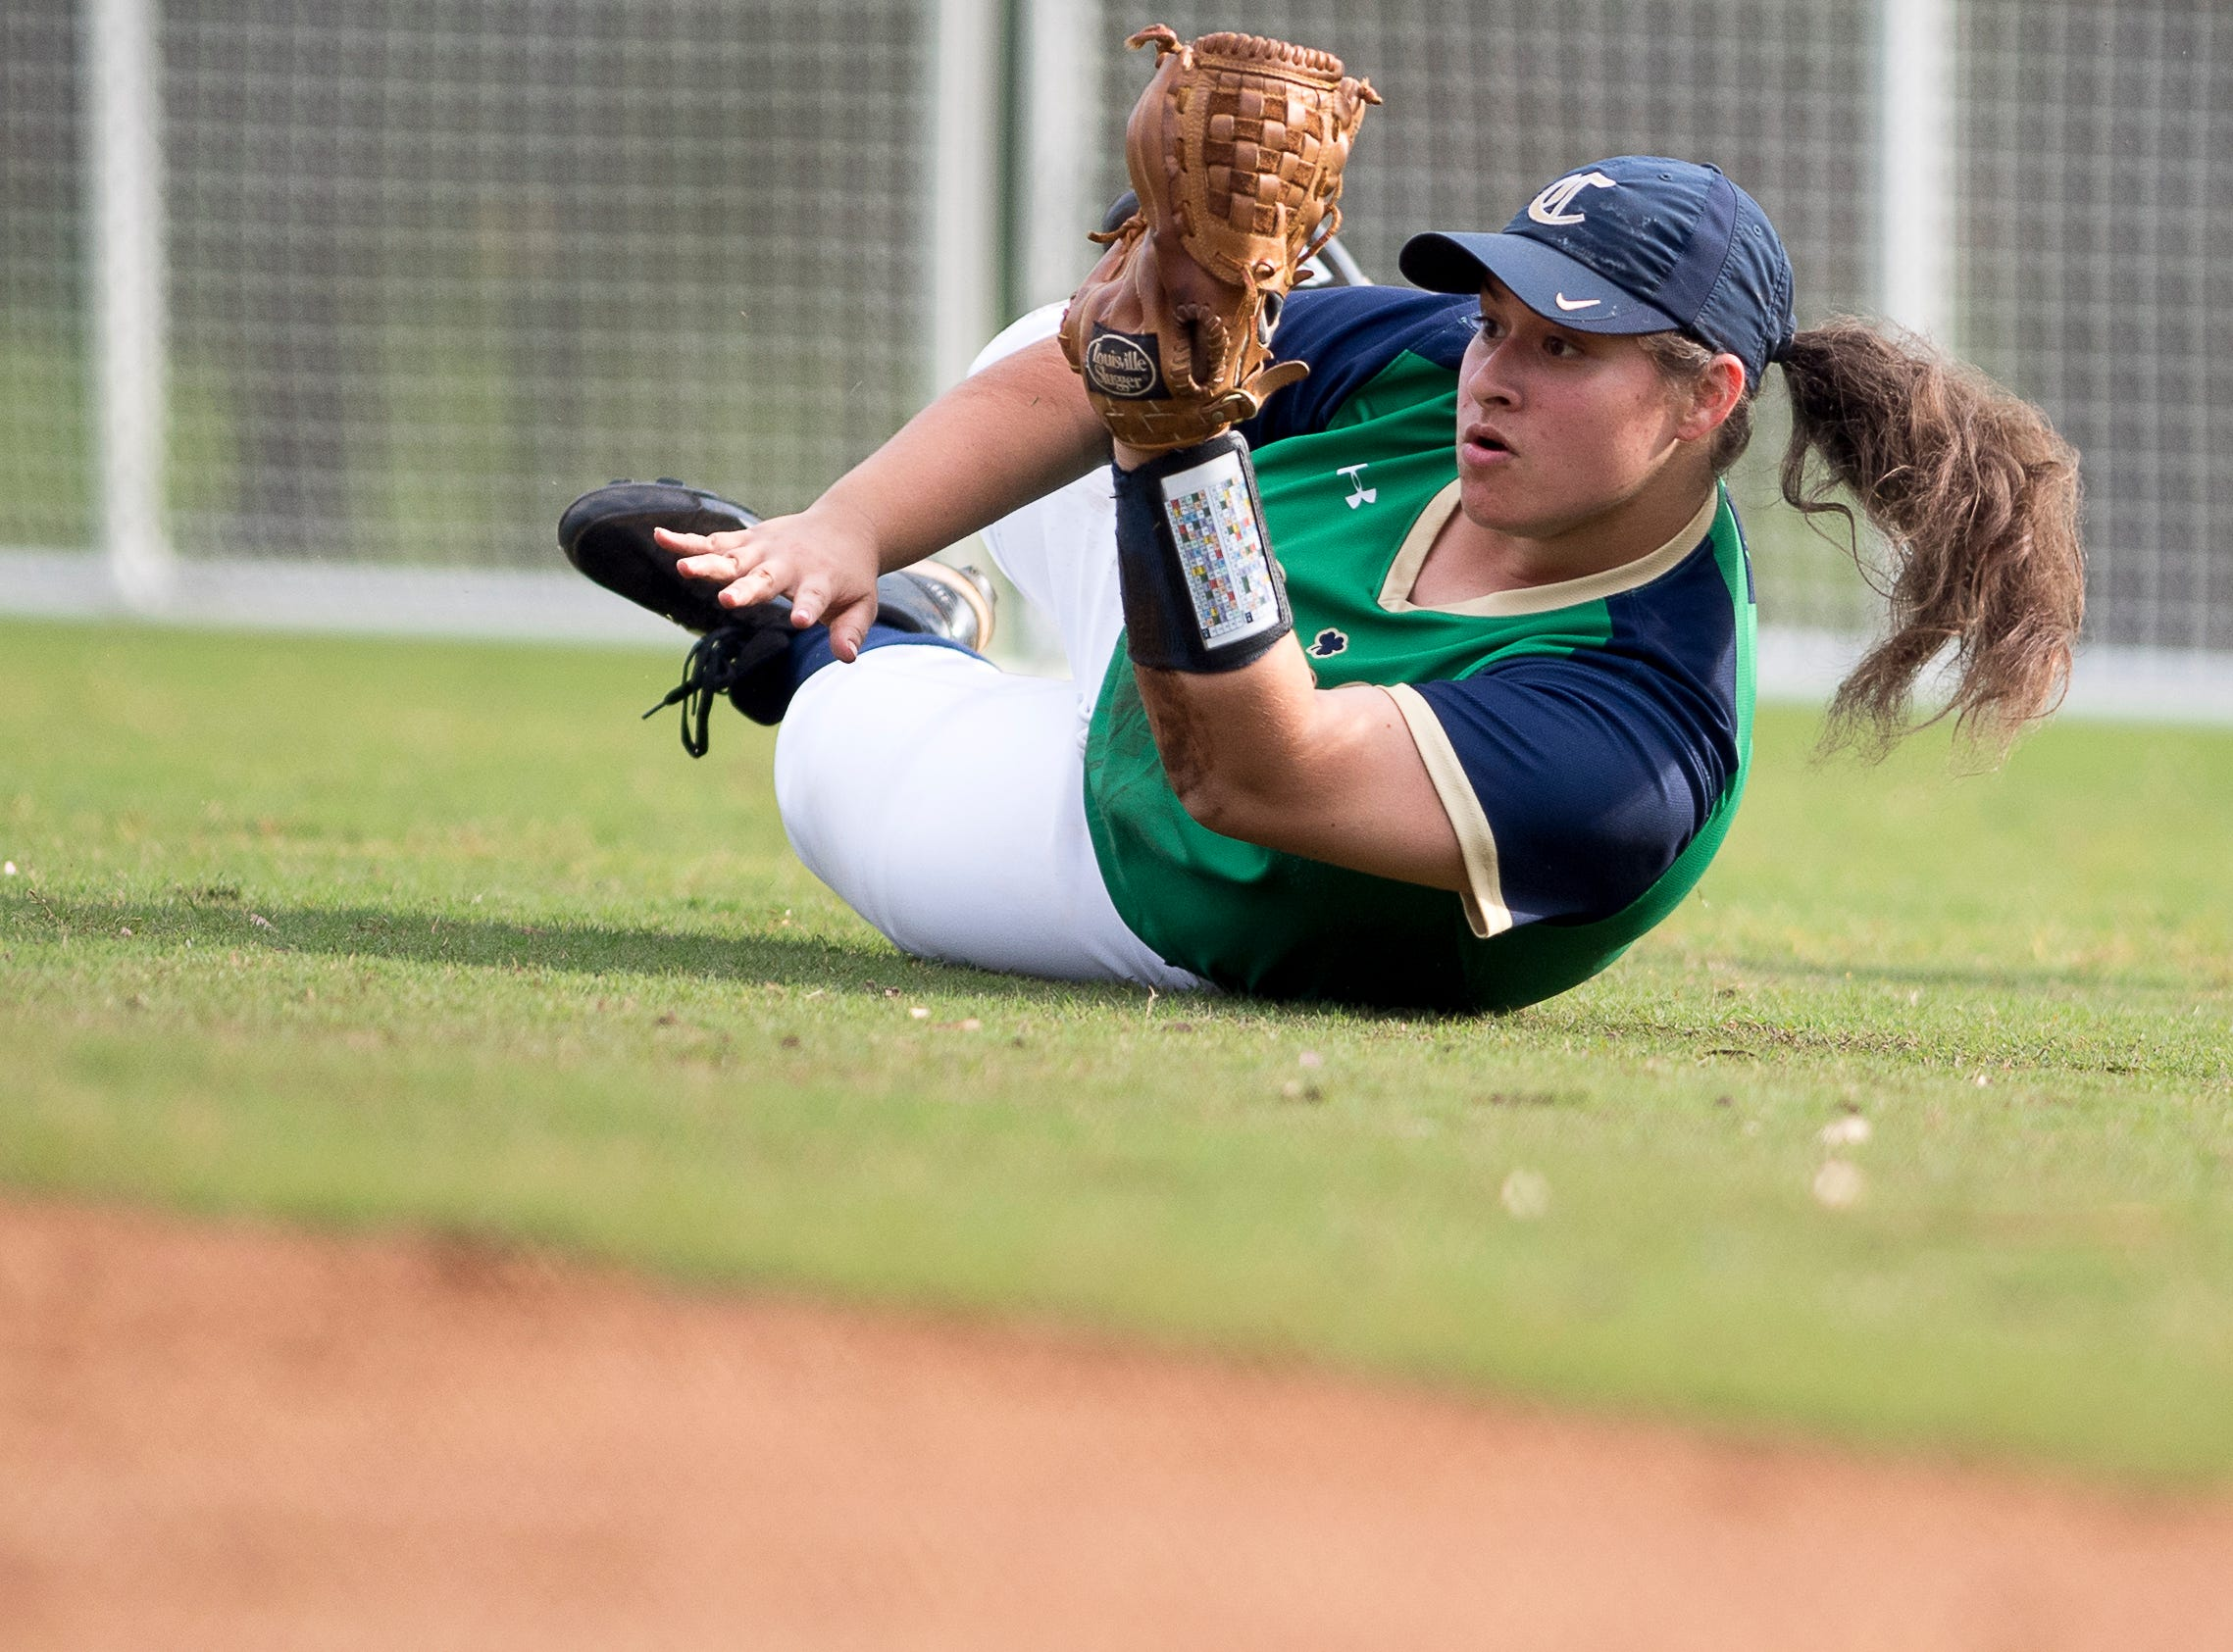 Catholic's Terra Schaeffer (23) makes a catch during a softball game between Catholic and Karns at Caswell Park in Knoxville, Tennessee on Friday, April 12, 2019.